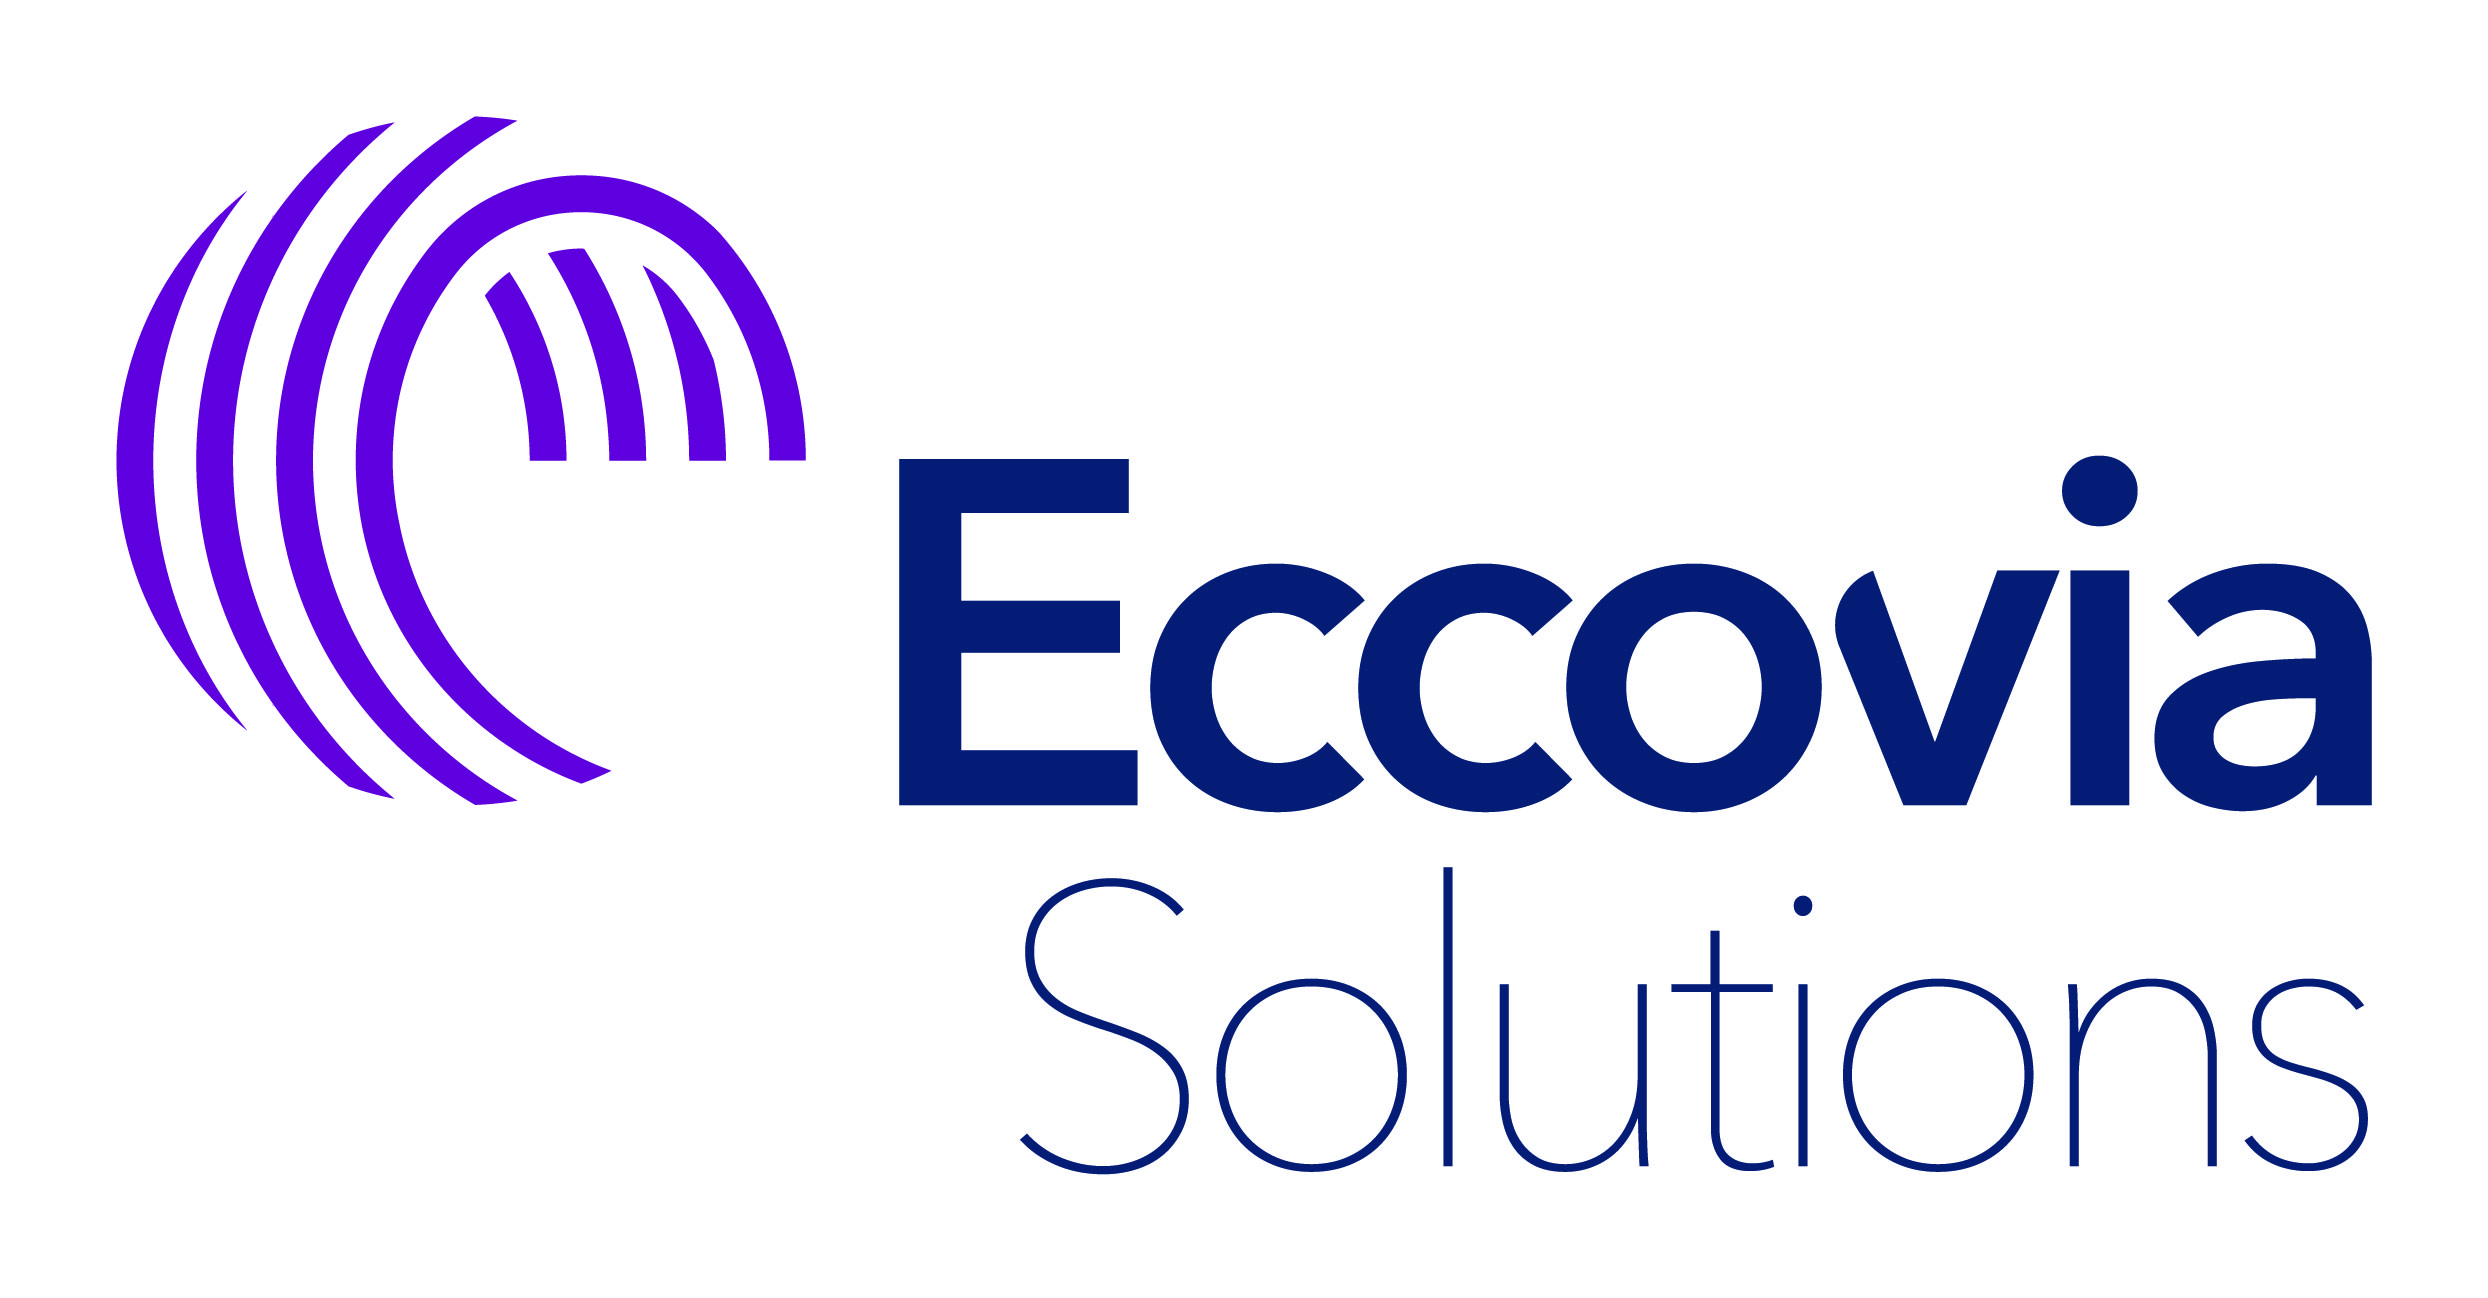 Eccovia Solutions Full Color Logo 091817-01